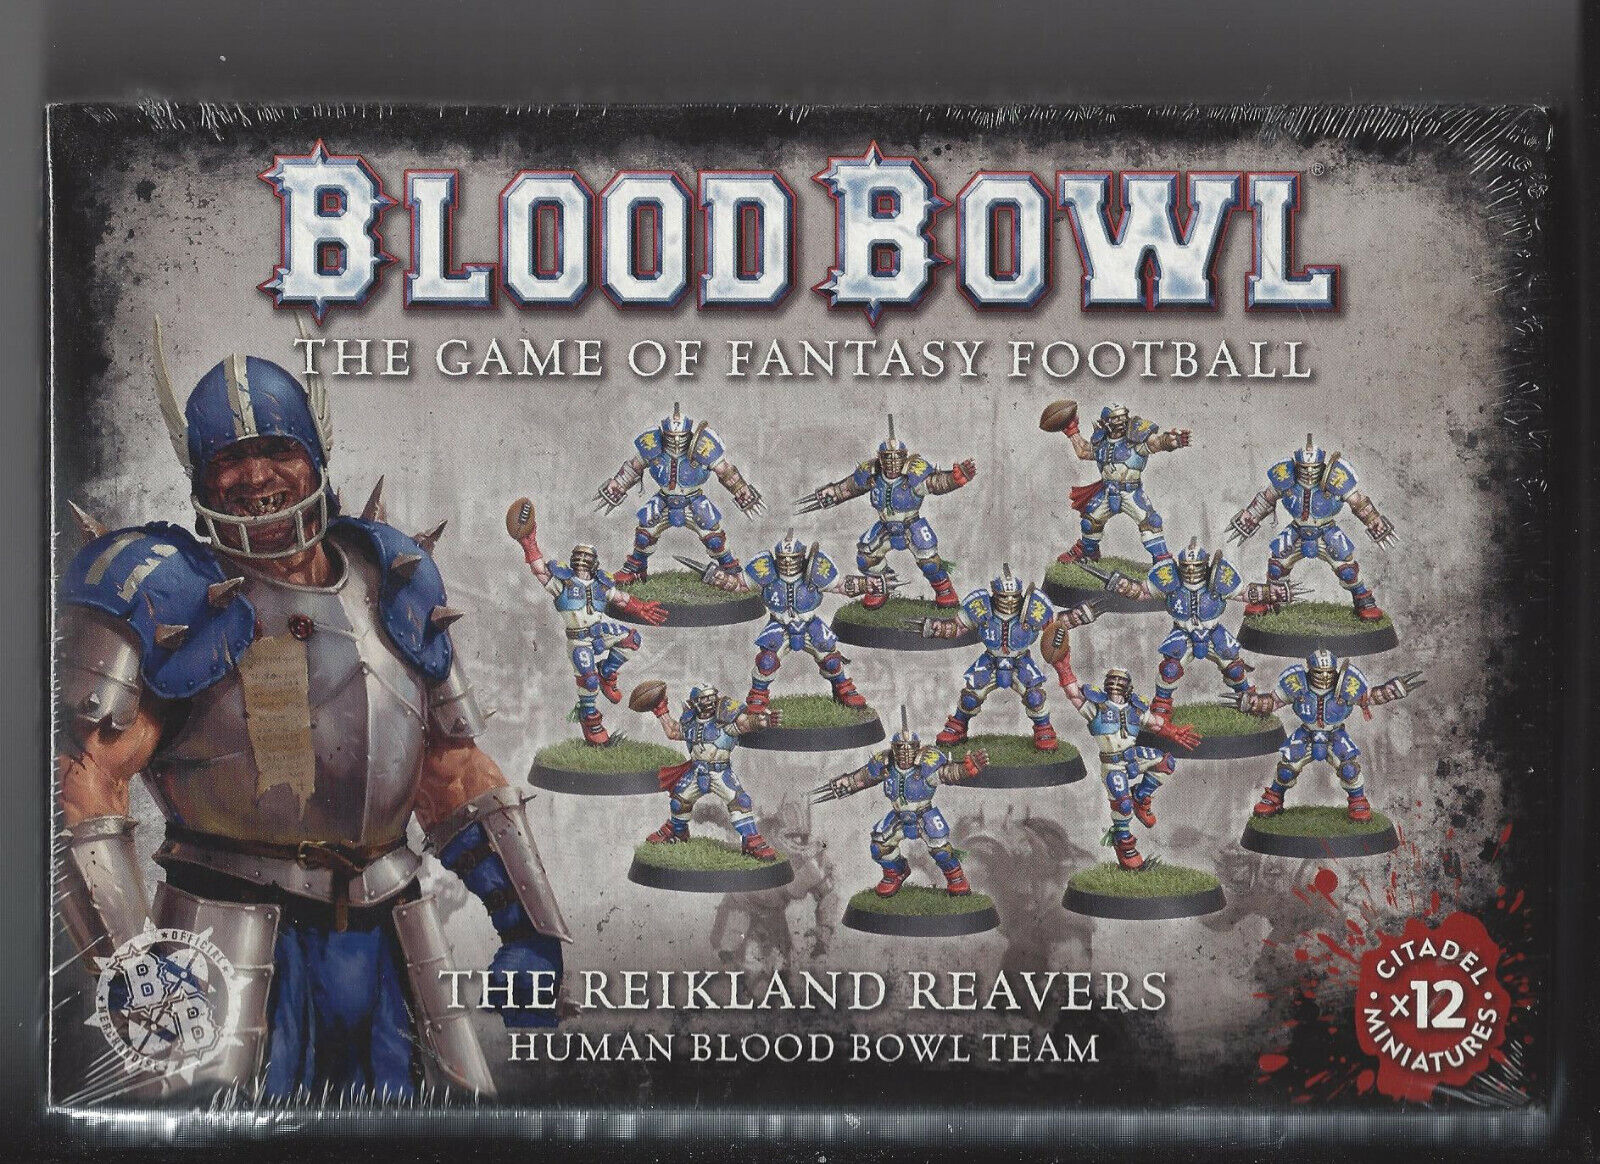 BOX ONLY. Games Workshop Excellent condition Bloodbowl Boxed Game BOX ONLY